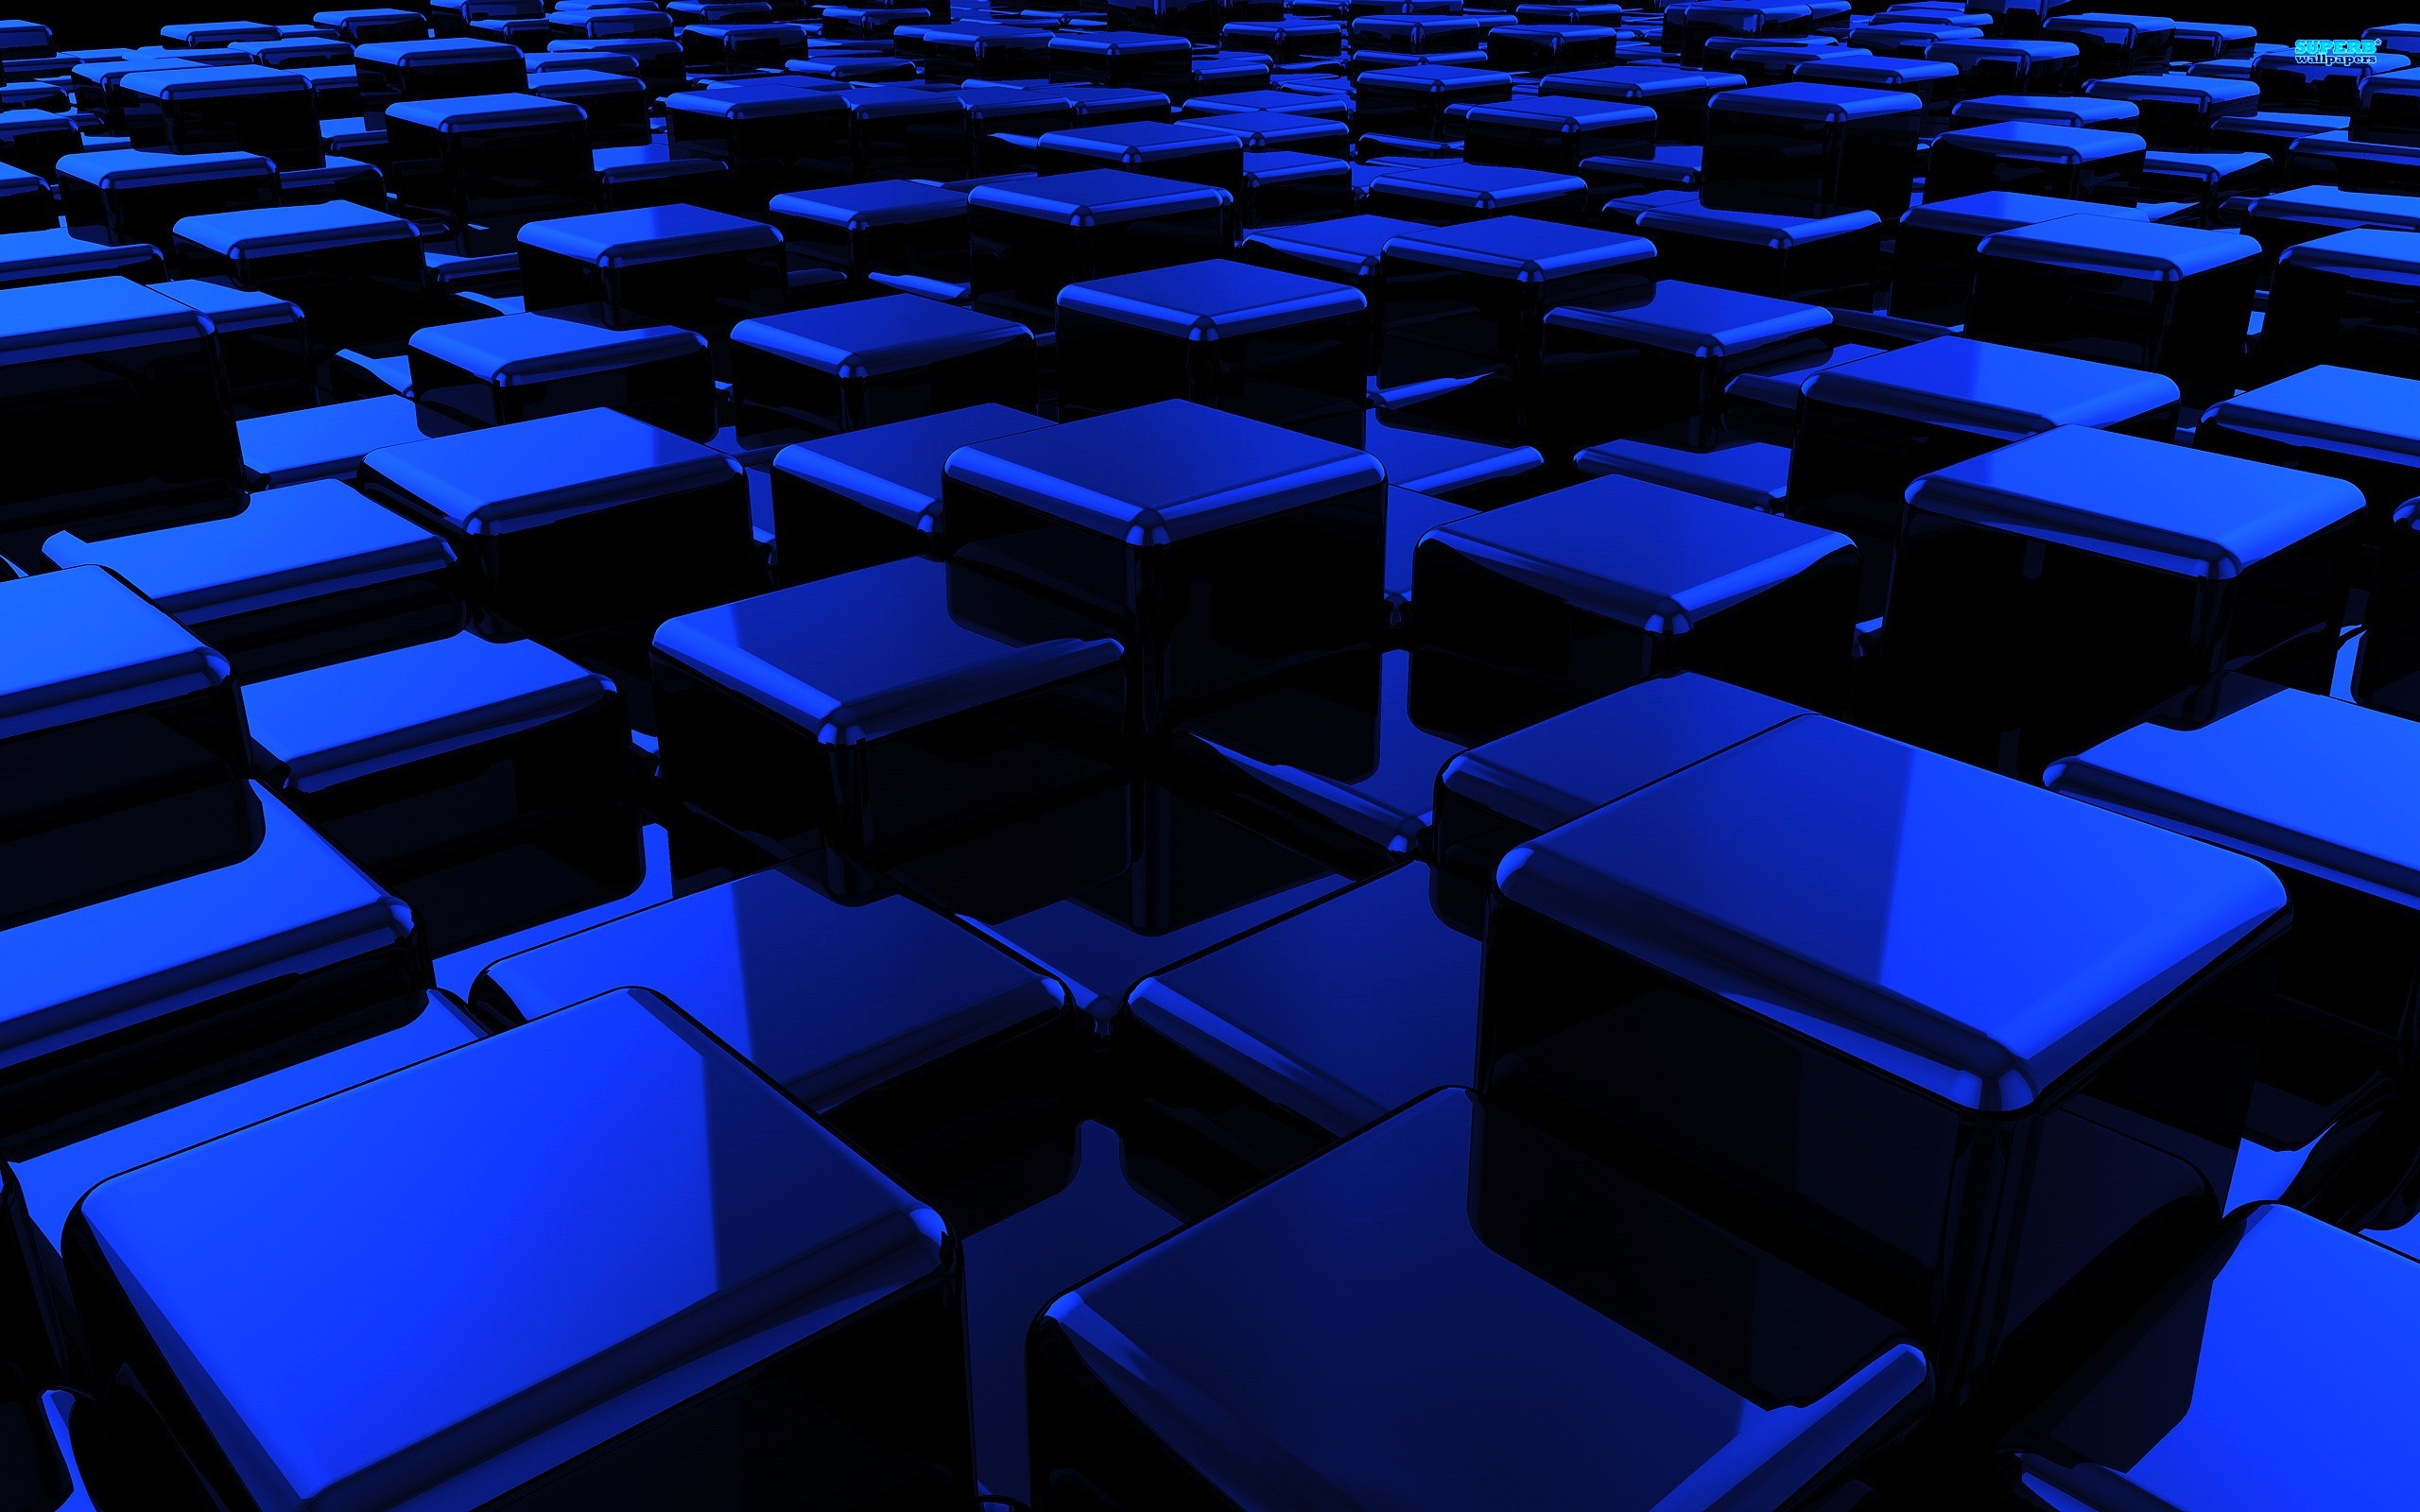 2560x1600 Blue Cubes Wallpaper  Blue, Cubes